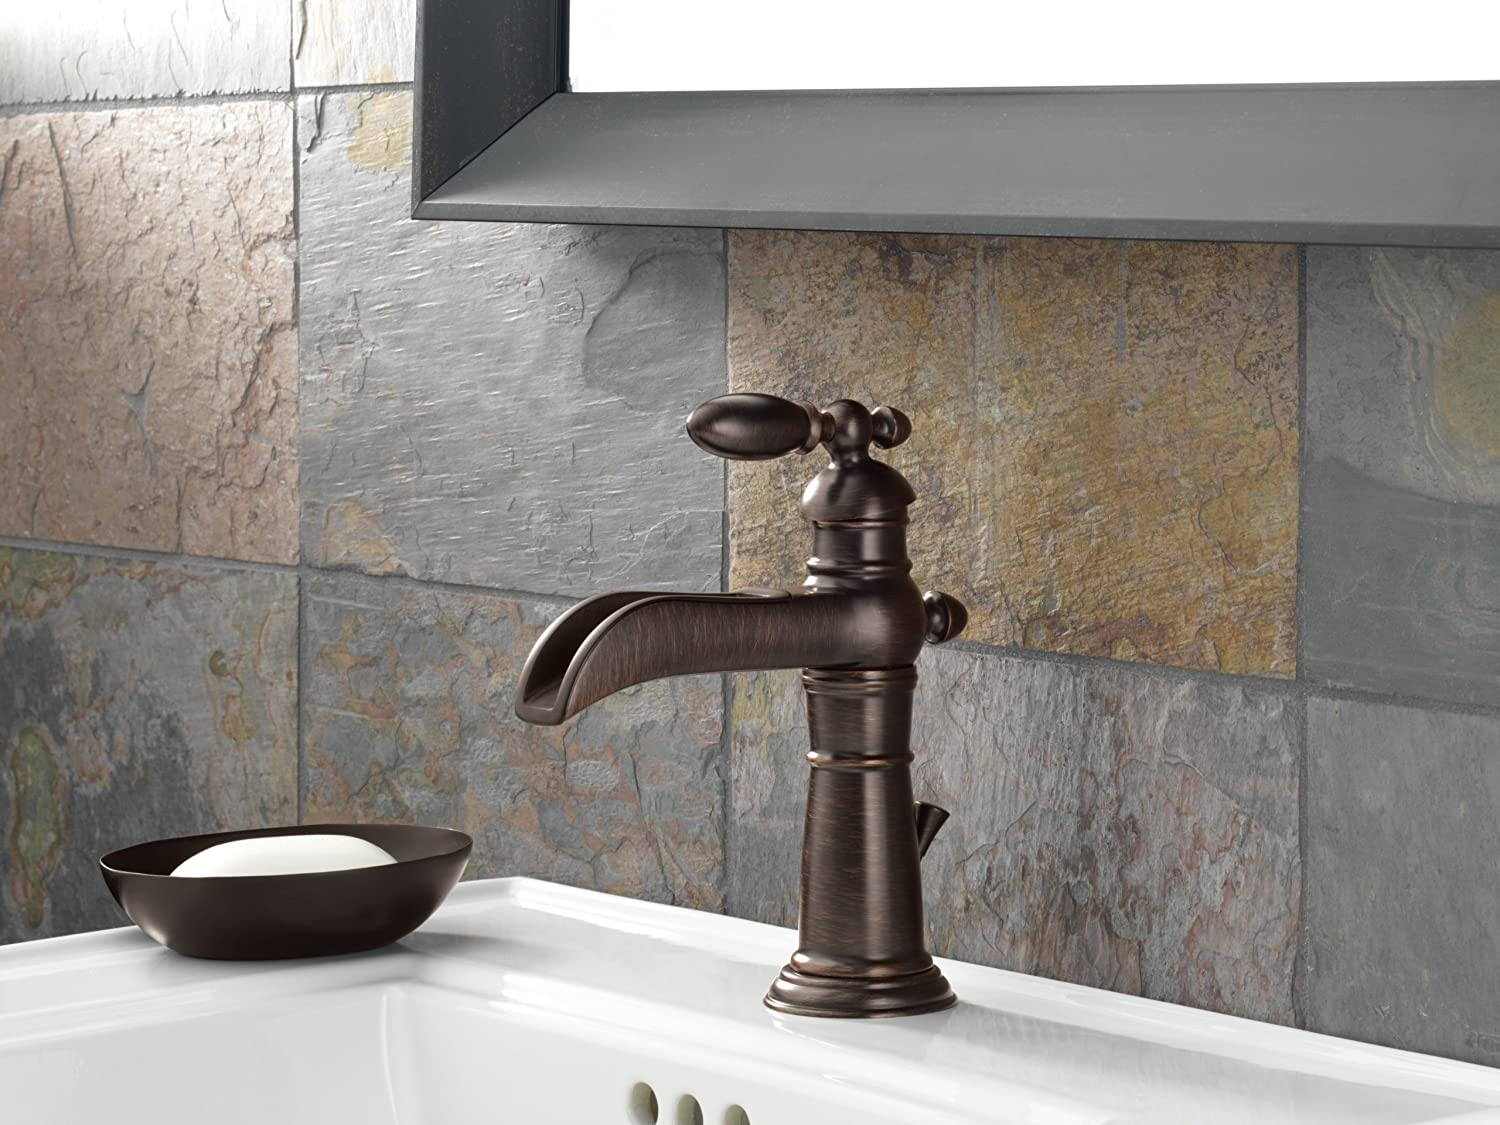 stainless oil stone sink faucets rubbed steelsink bronze elite info product glass kitchen faucet vessel waterfall sinks bathroom